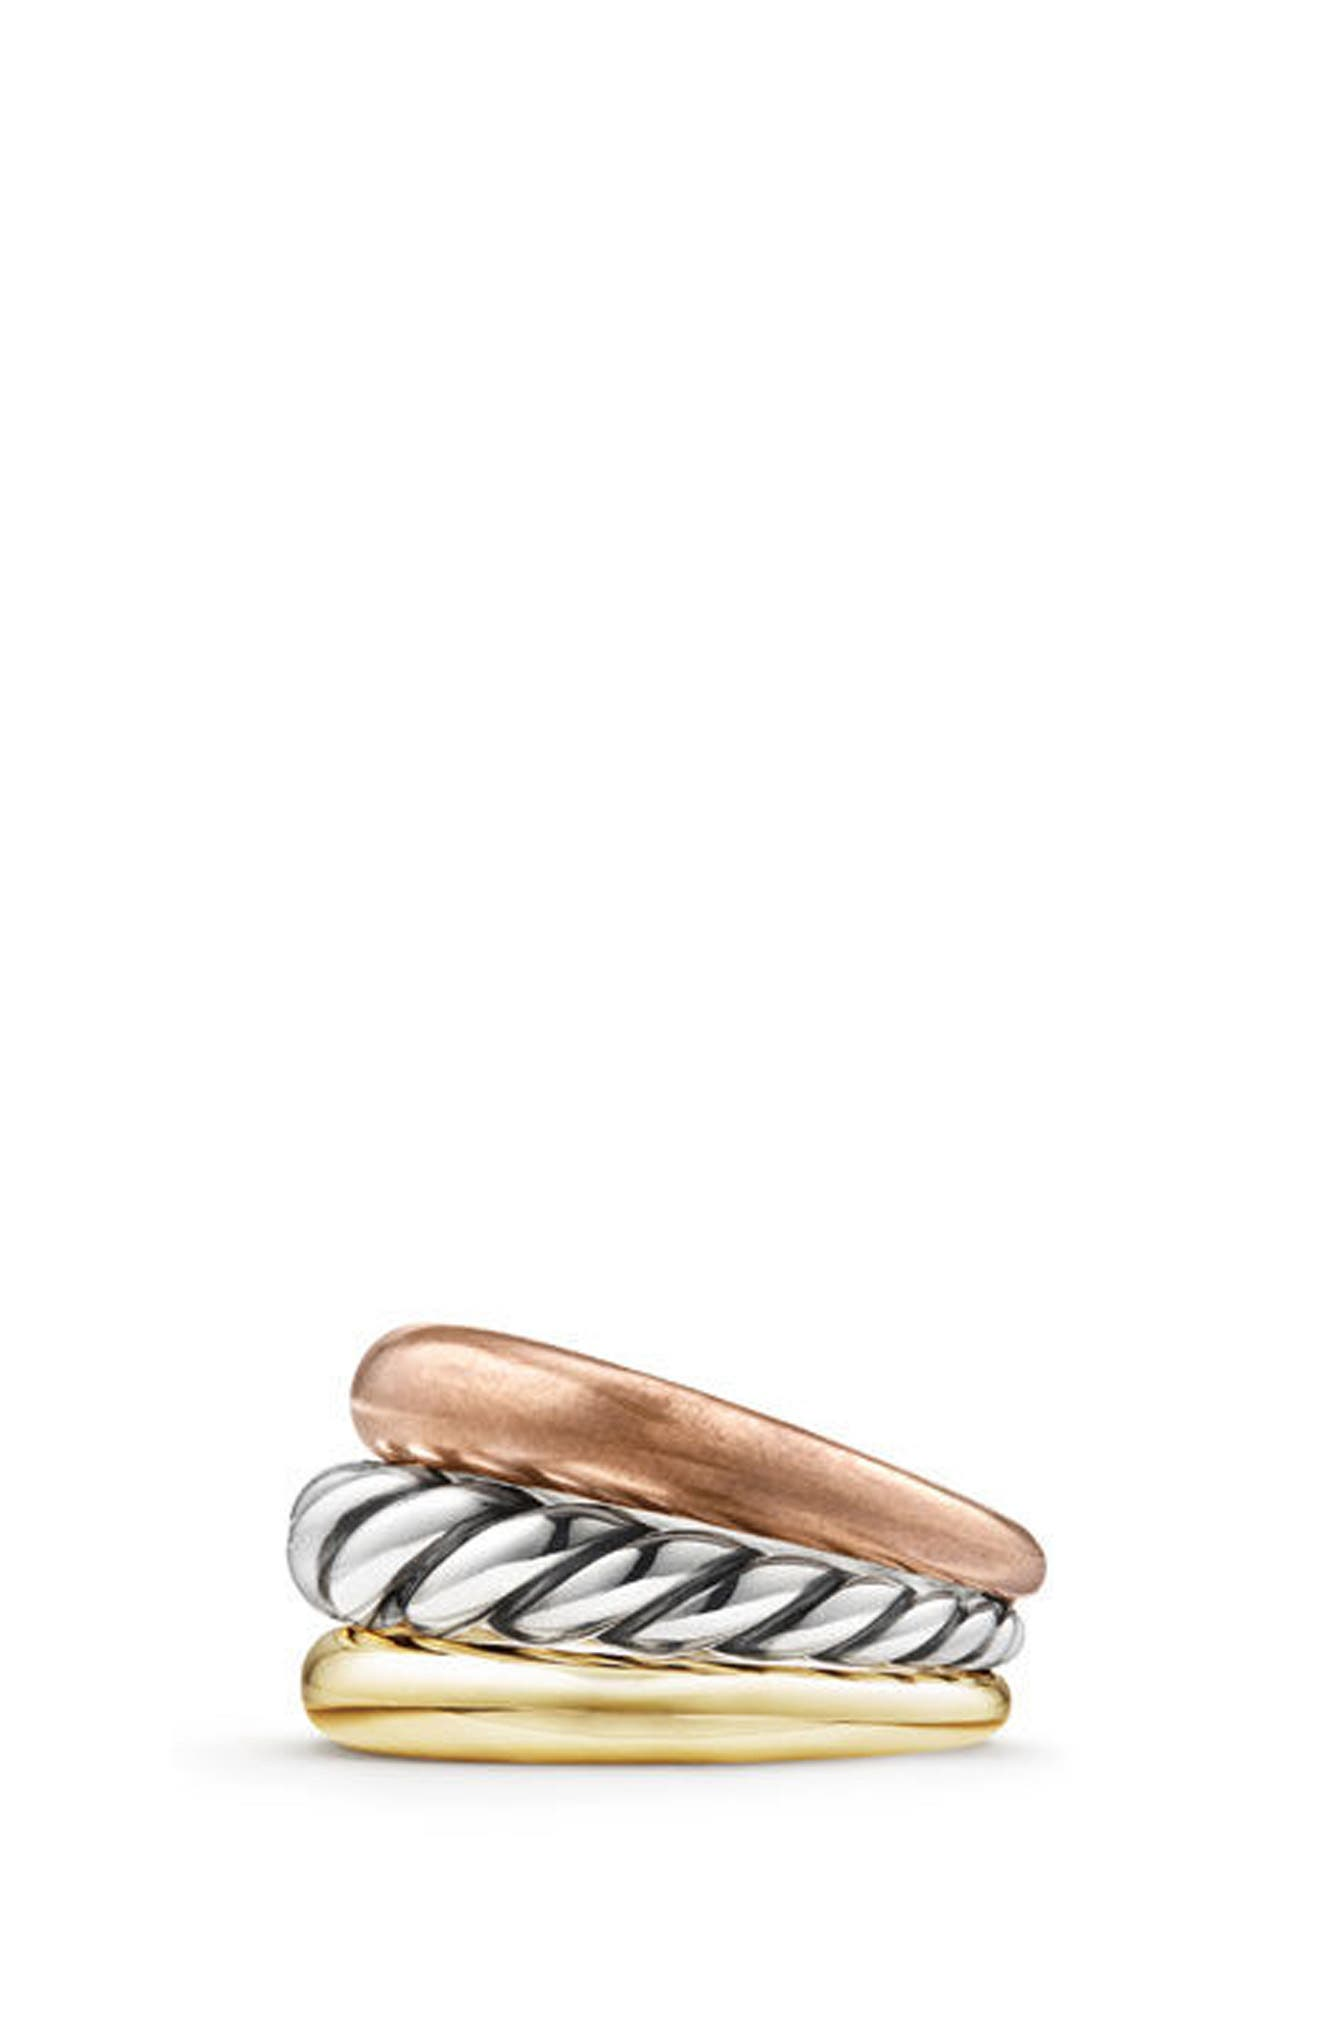 Pure Form Mixed Metal Three-Row Ring with Bronze, Silver & Brass,                             Alternate thumbnail 3, color,                             040